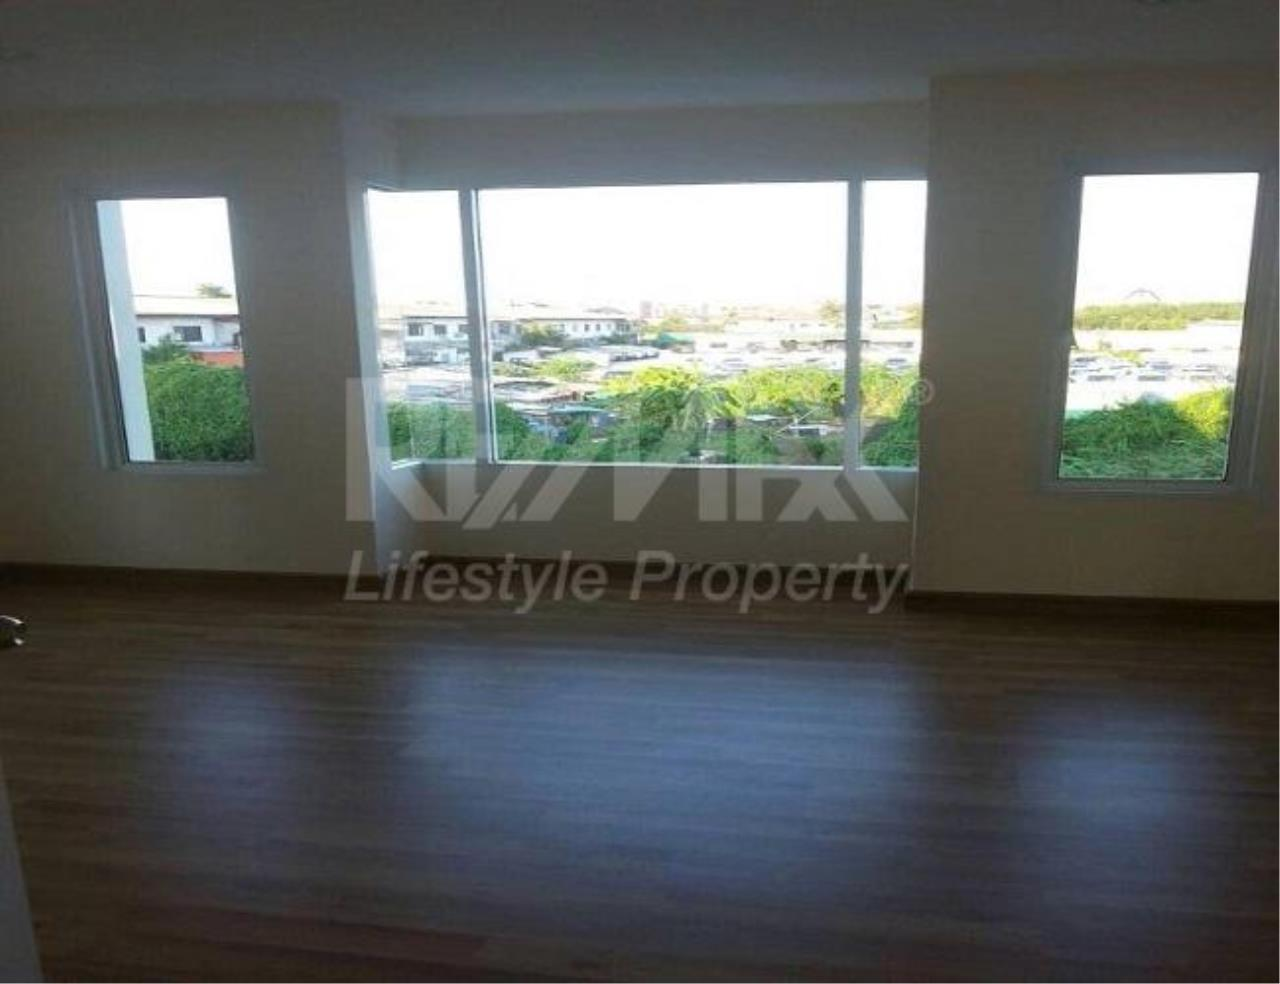 RE/MAX LifeStyle Property Agency's Town House Premium Place Nawamin – Ladprao 10 2